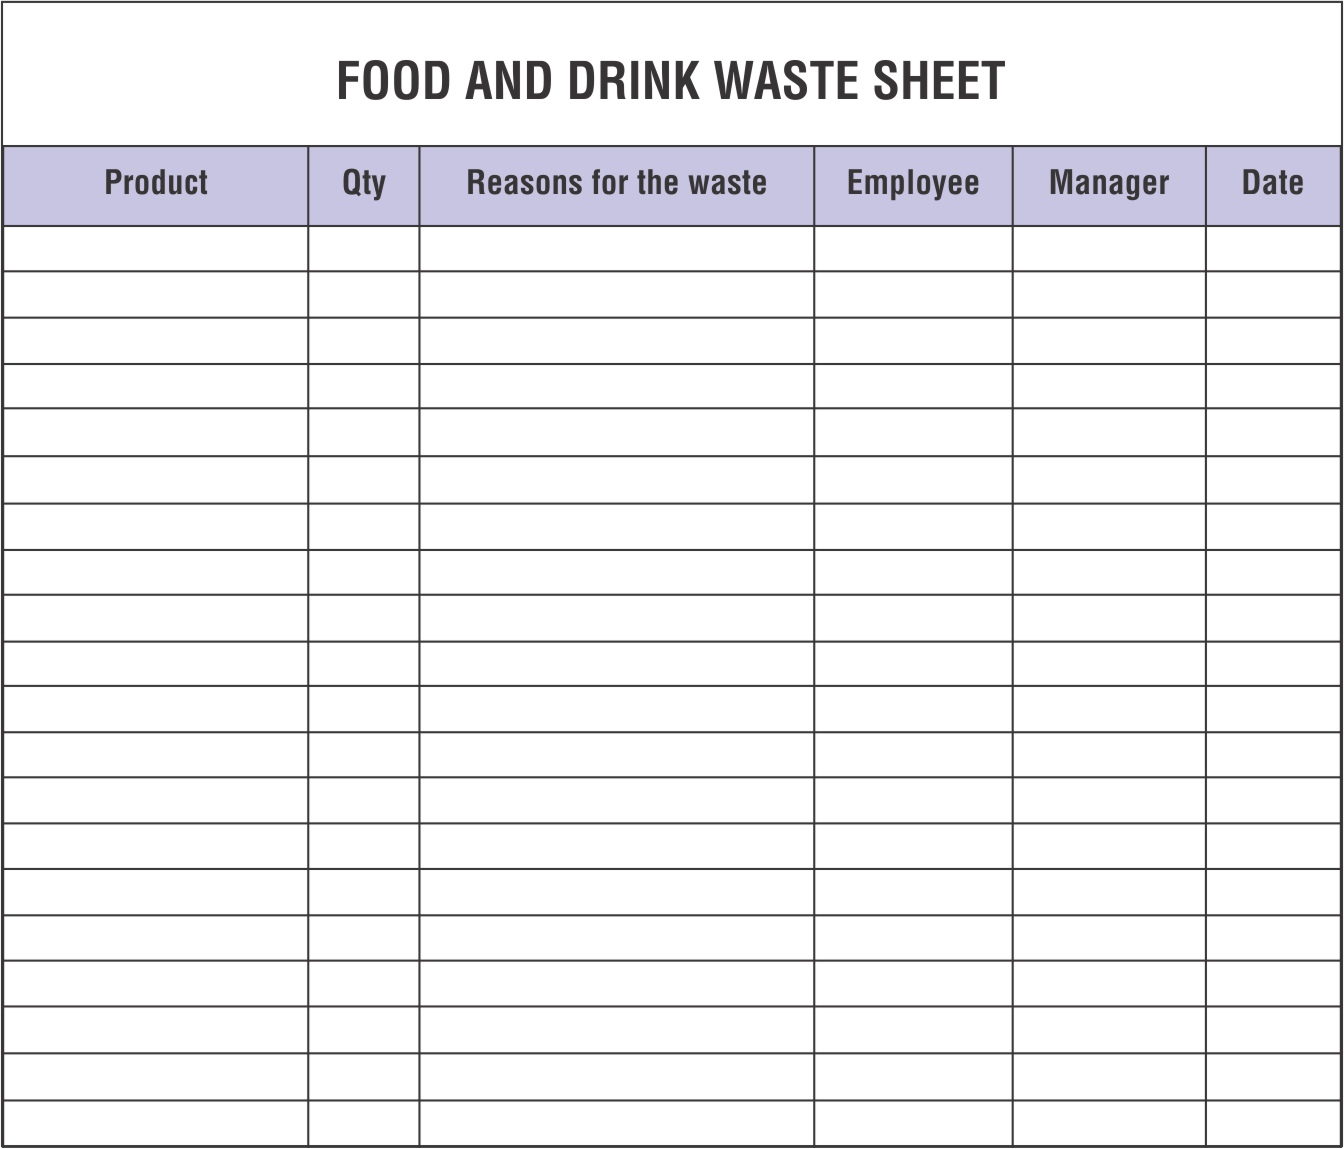 How To Do An Inventory Spreadsheet Intended For Restaurant Inventory Spreadsheets That You Must Maintain And Monitor